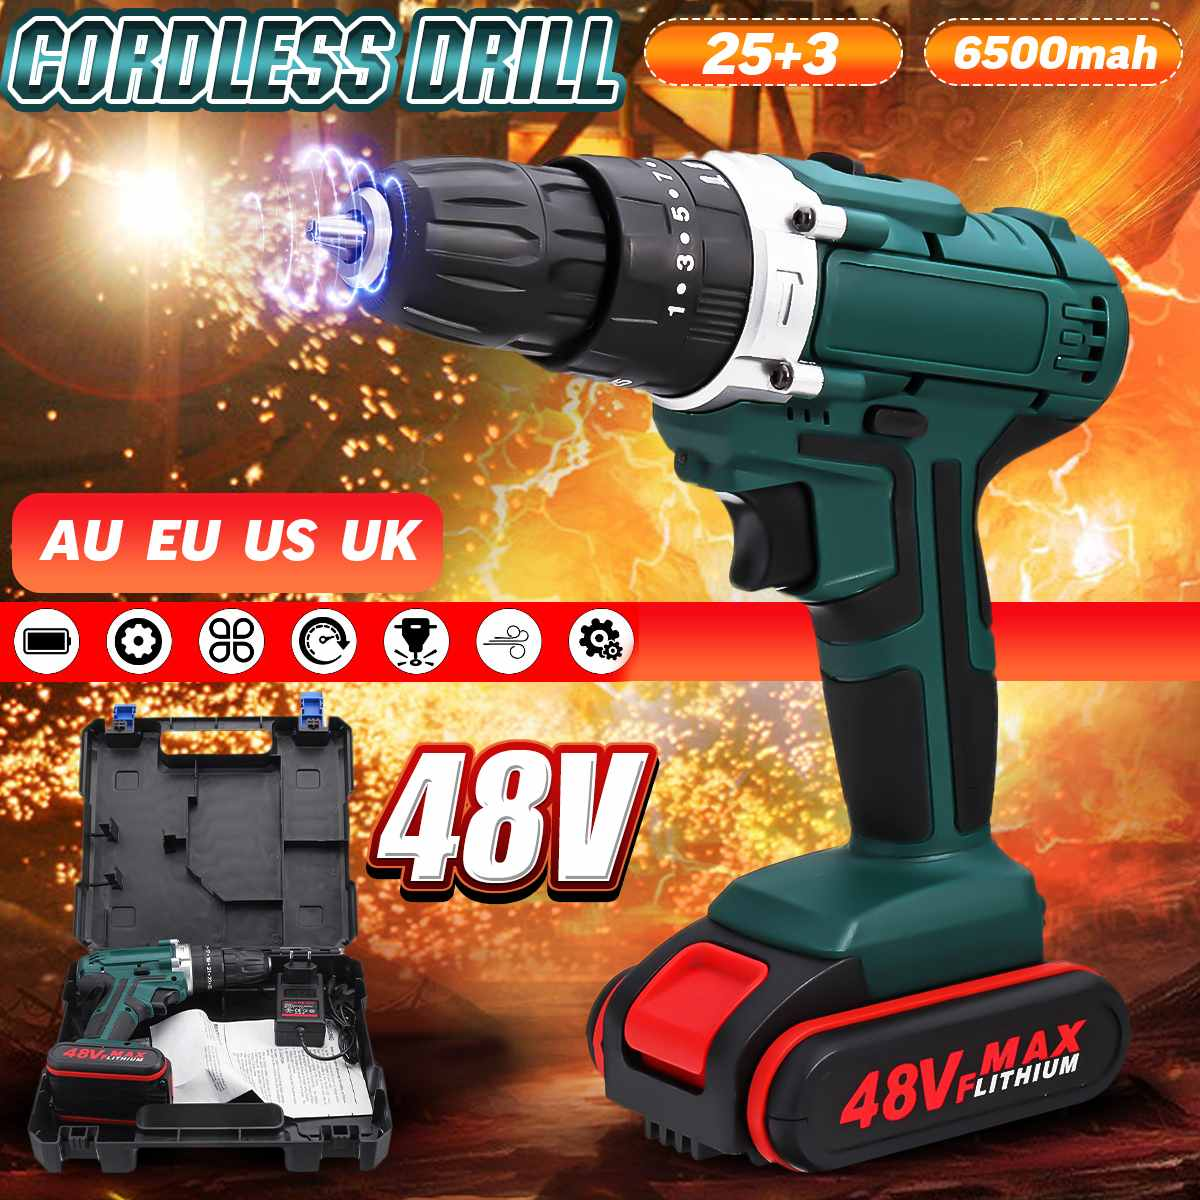 48V Cordless Drill Electric Drill Rechargeable 6500mah Battery Screwdriver Power Tools Mini Drill Drilling Electric Screwdriver